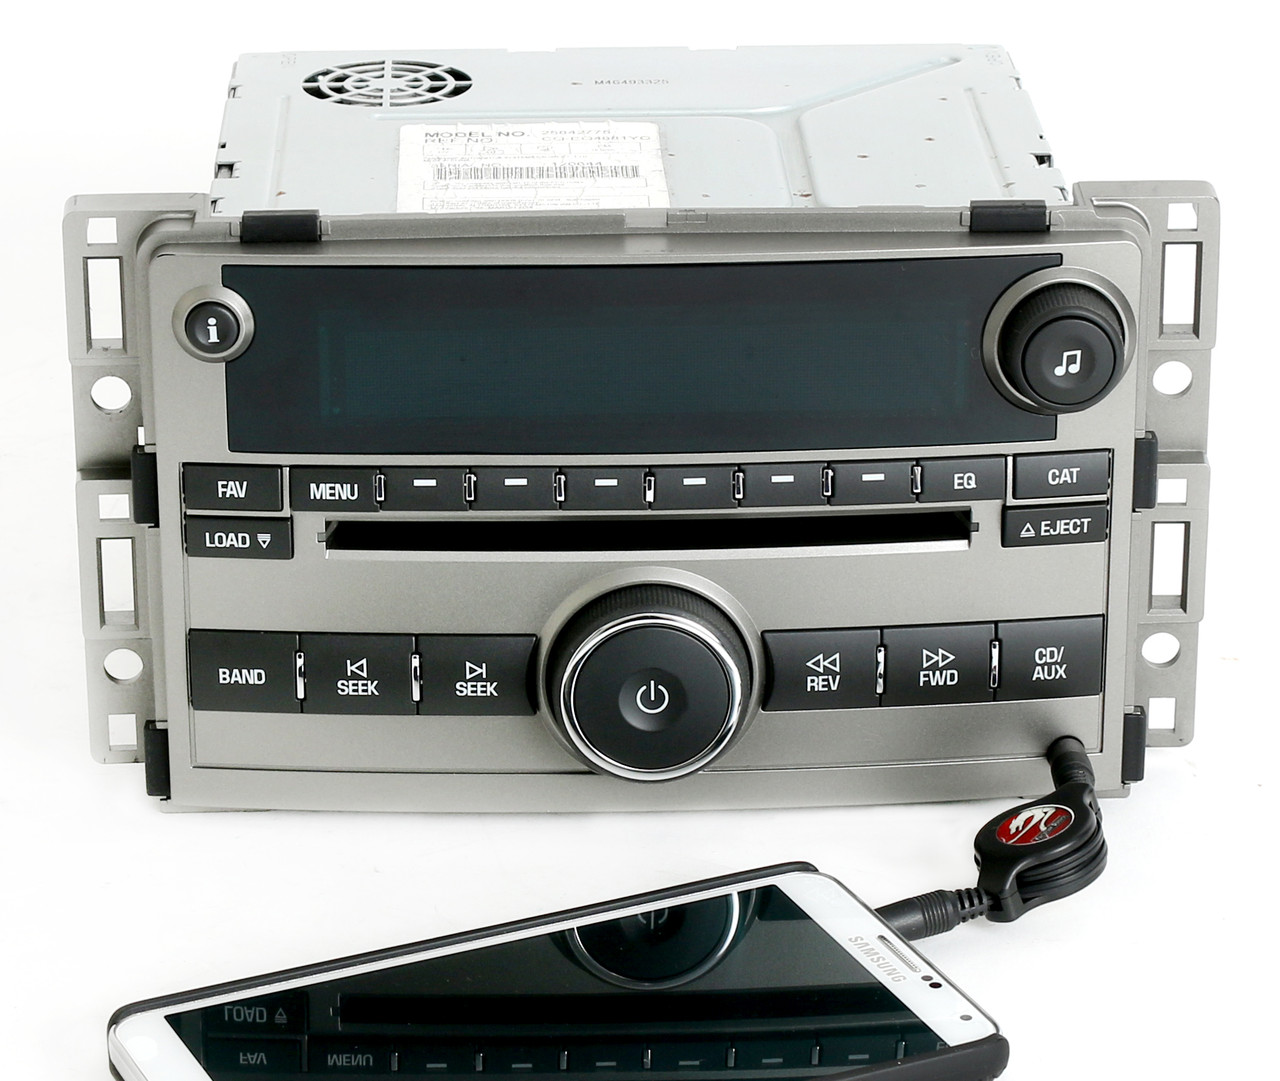 2008 chevy malibu software architecture diagram visio template gray radio am fm 6 disc cd player w aux input http d3d71ba2asa5oz cloudfront net 12015082 images img 5845